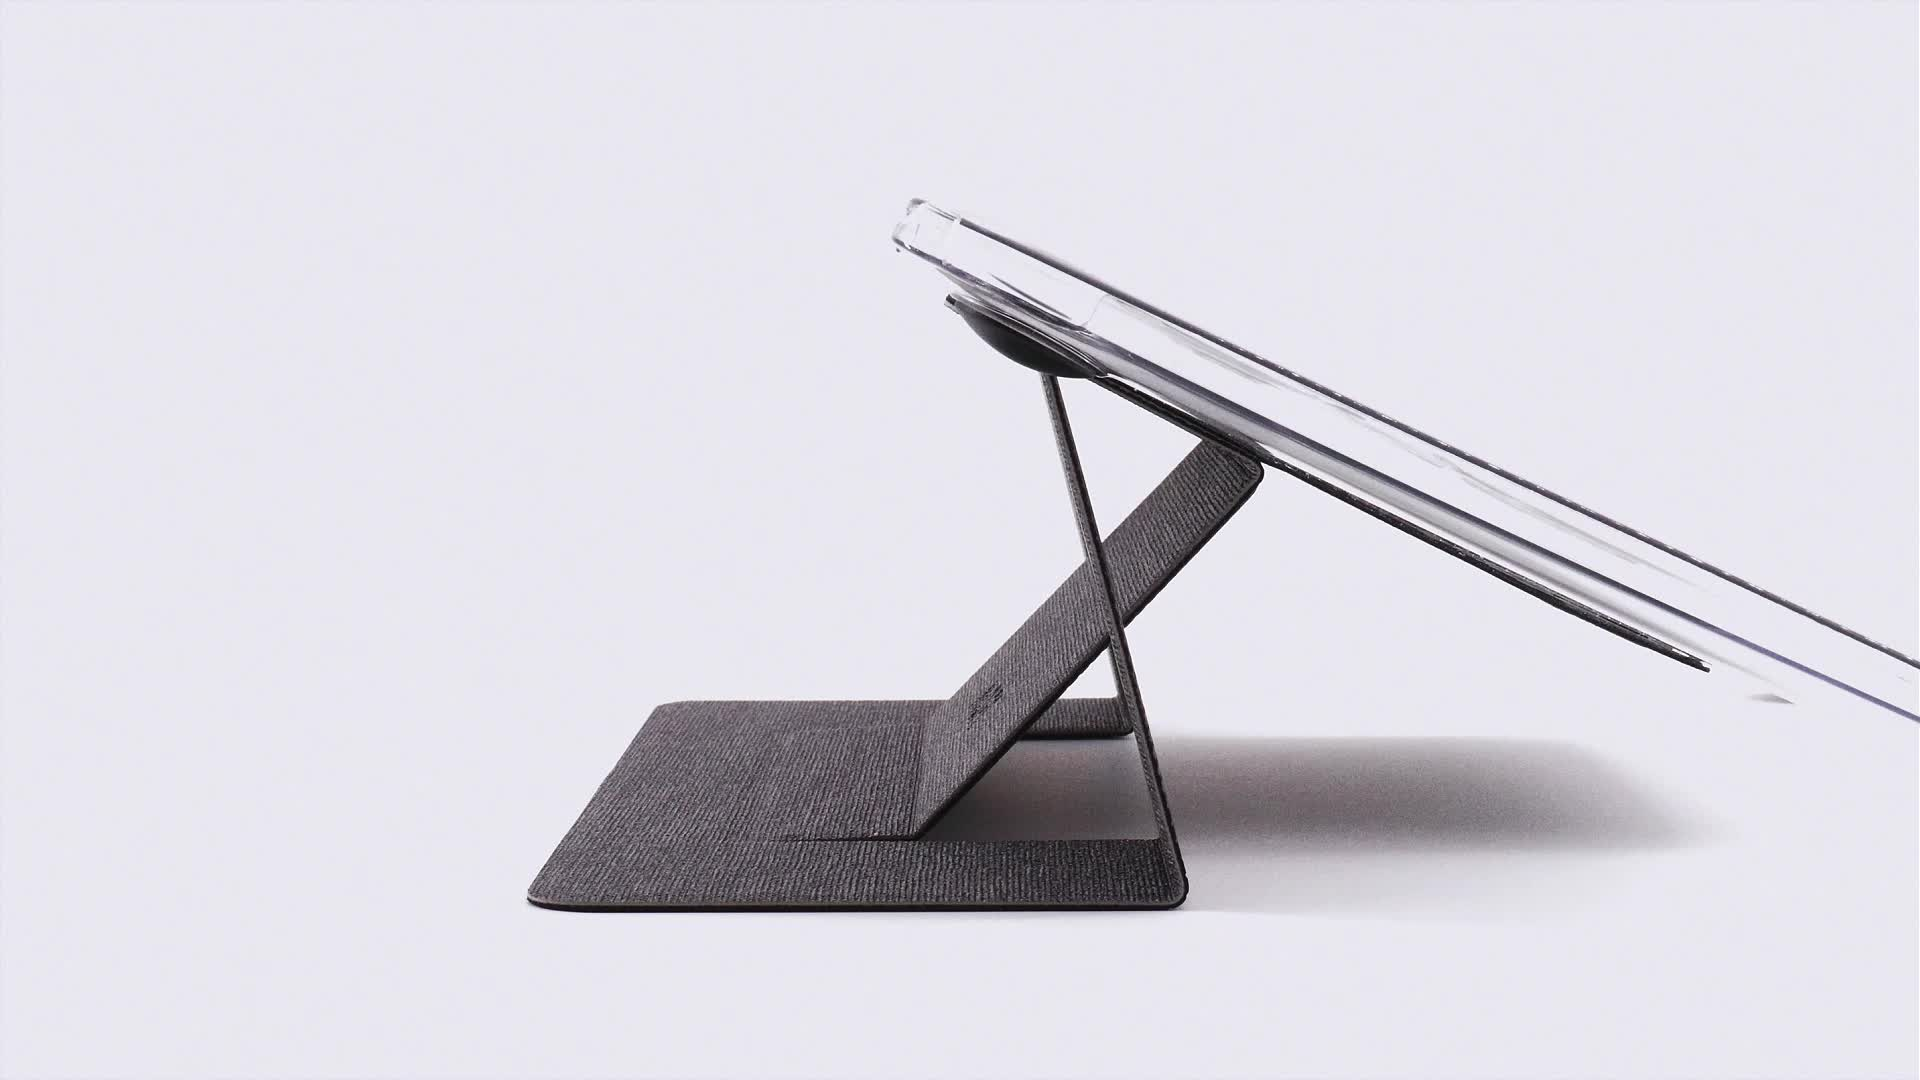 MOFT Invisible Laptop Stand with Patent World's First Adhesive Portable and Fold-able Desk for Macbook Light Laptop Table